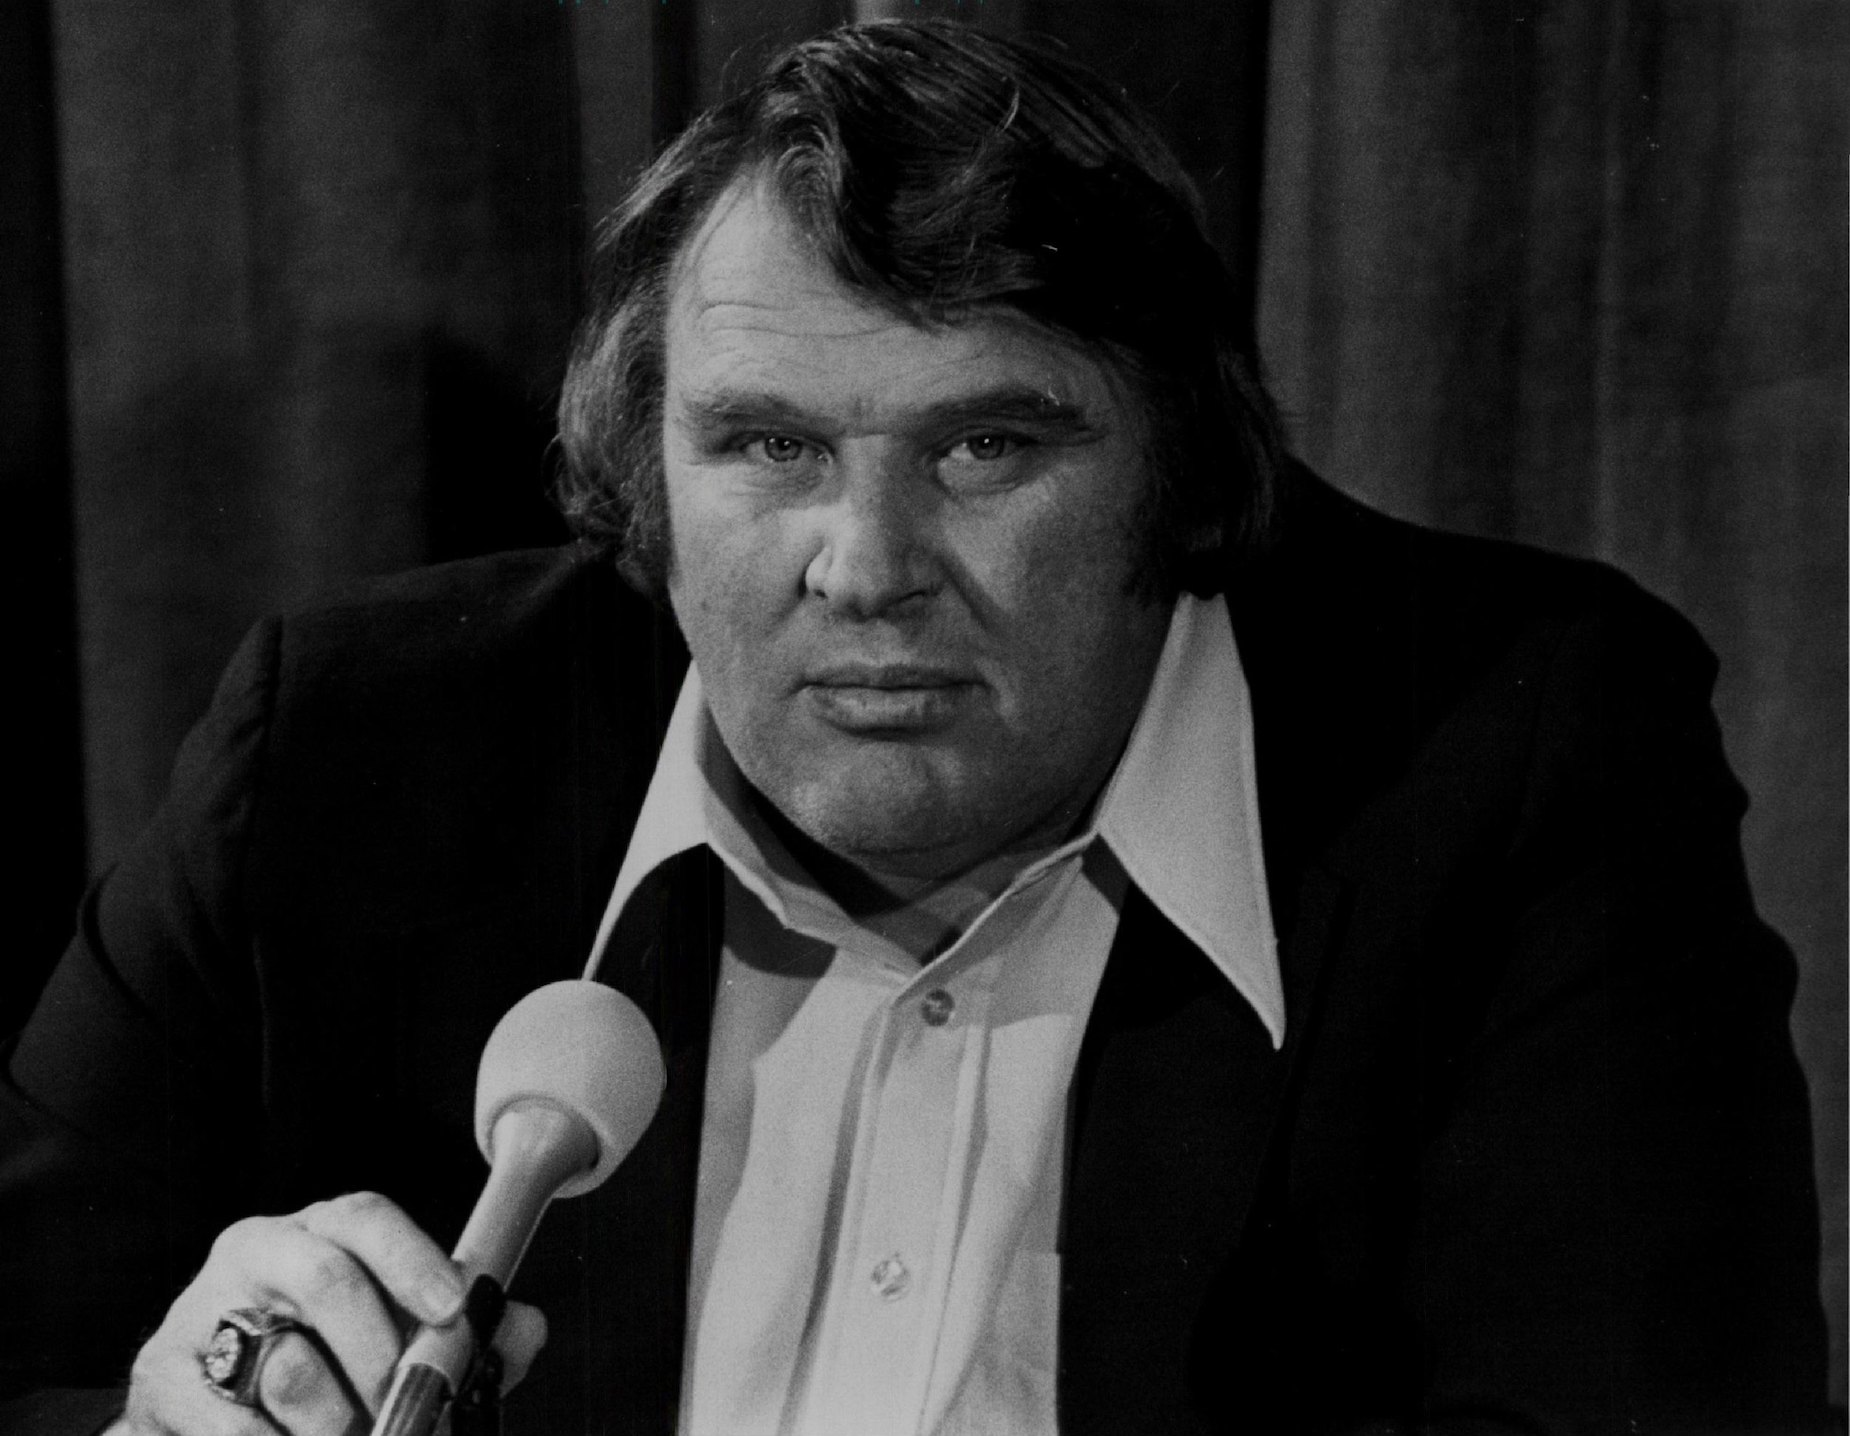 Oakland Raiders head coach John Madden during an interview in the 1970s